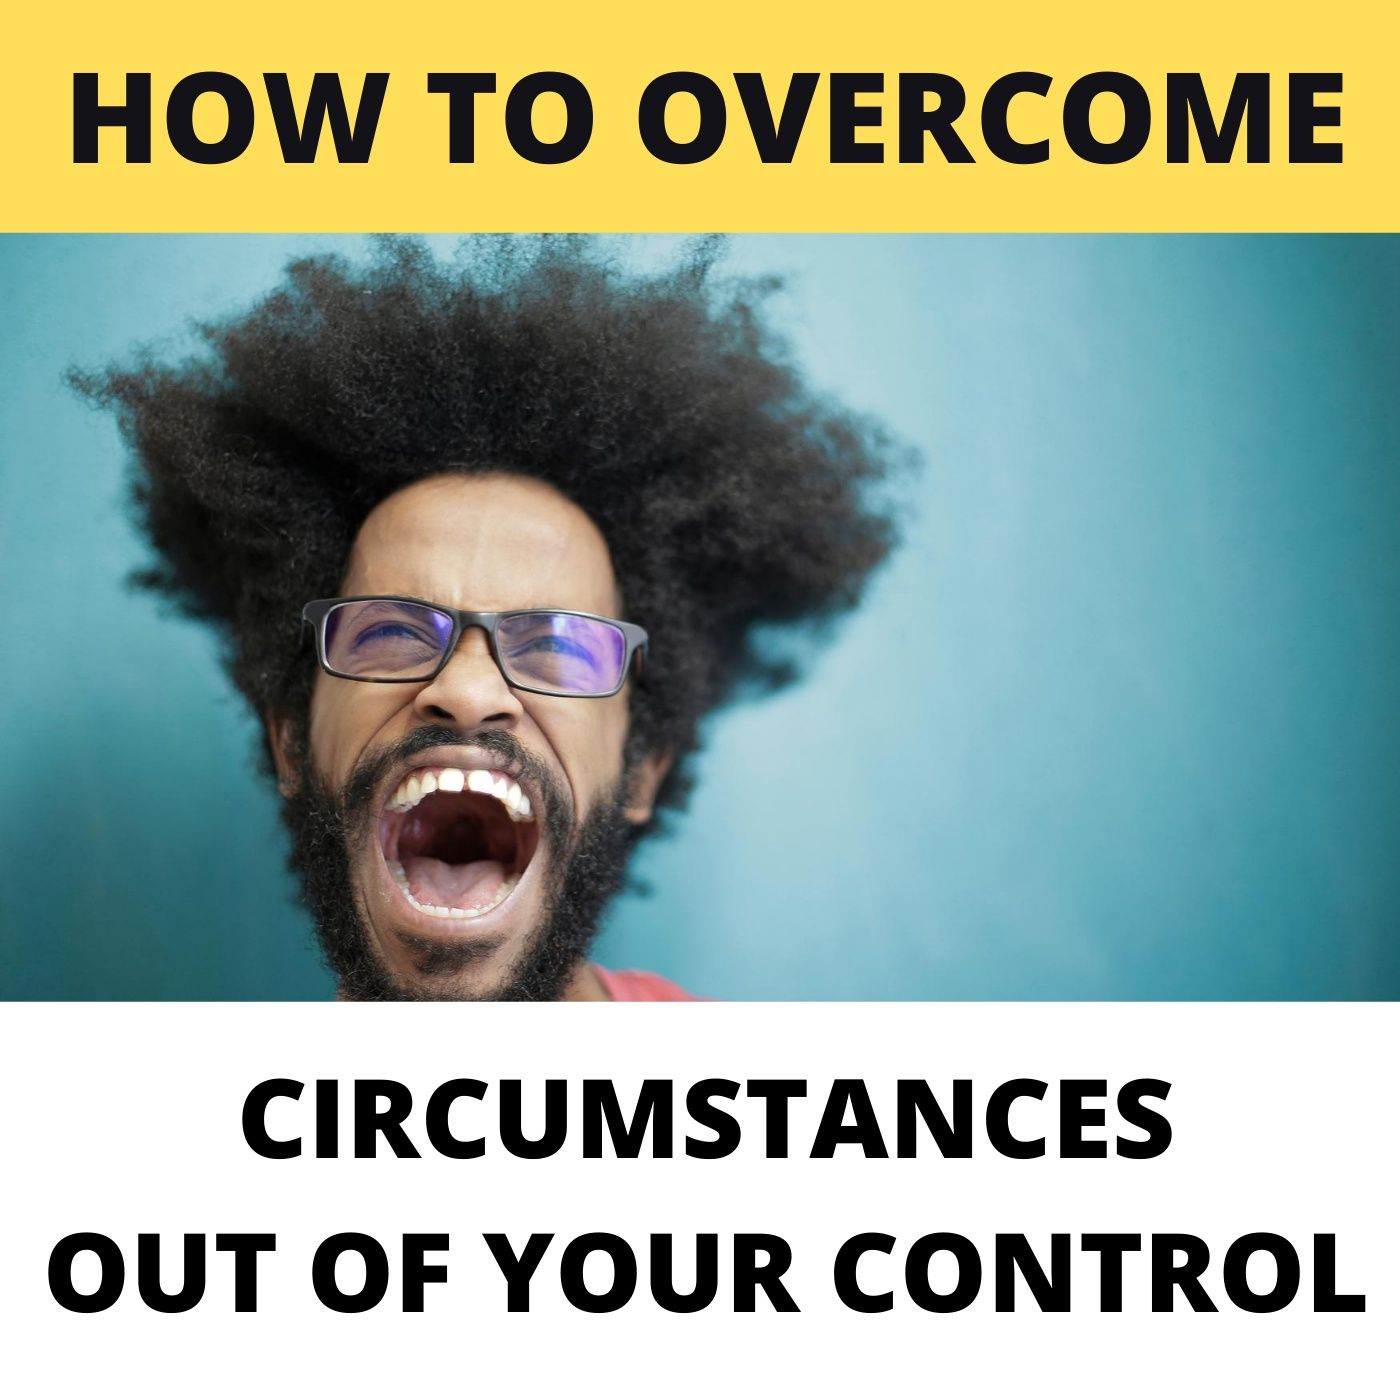 Overcome Circumstances Out Of Your Control